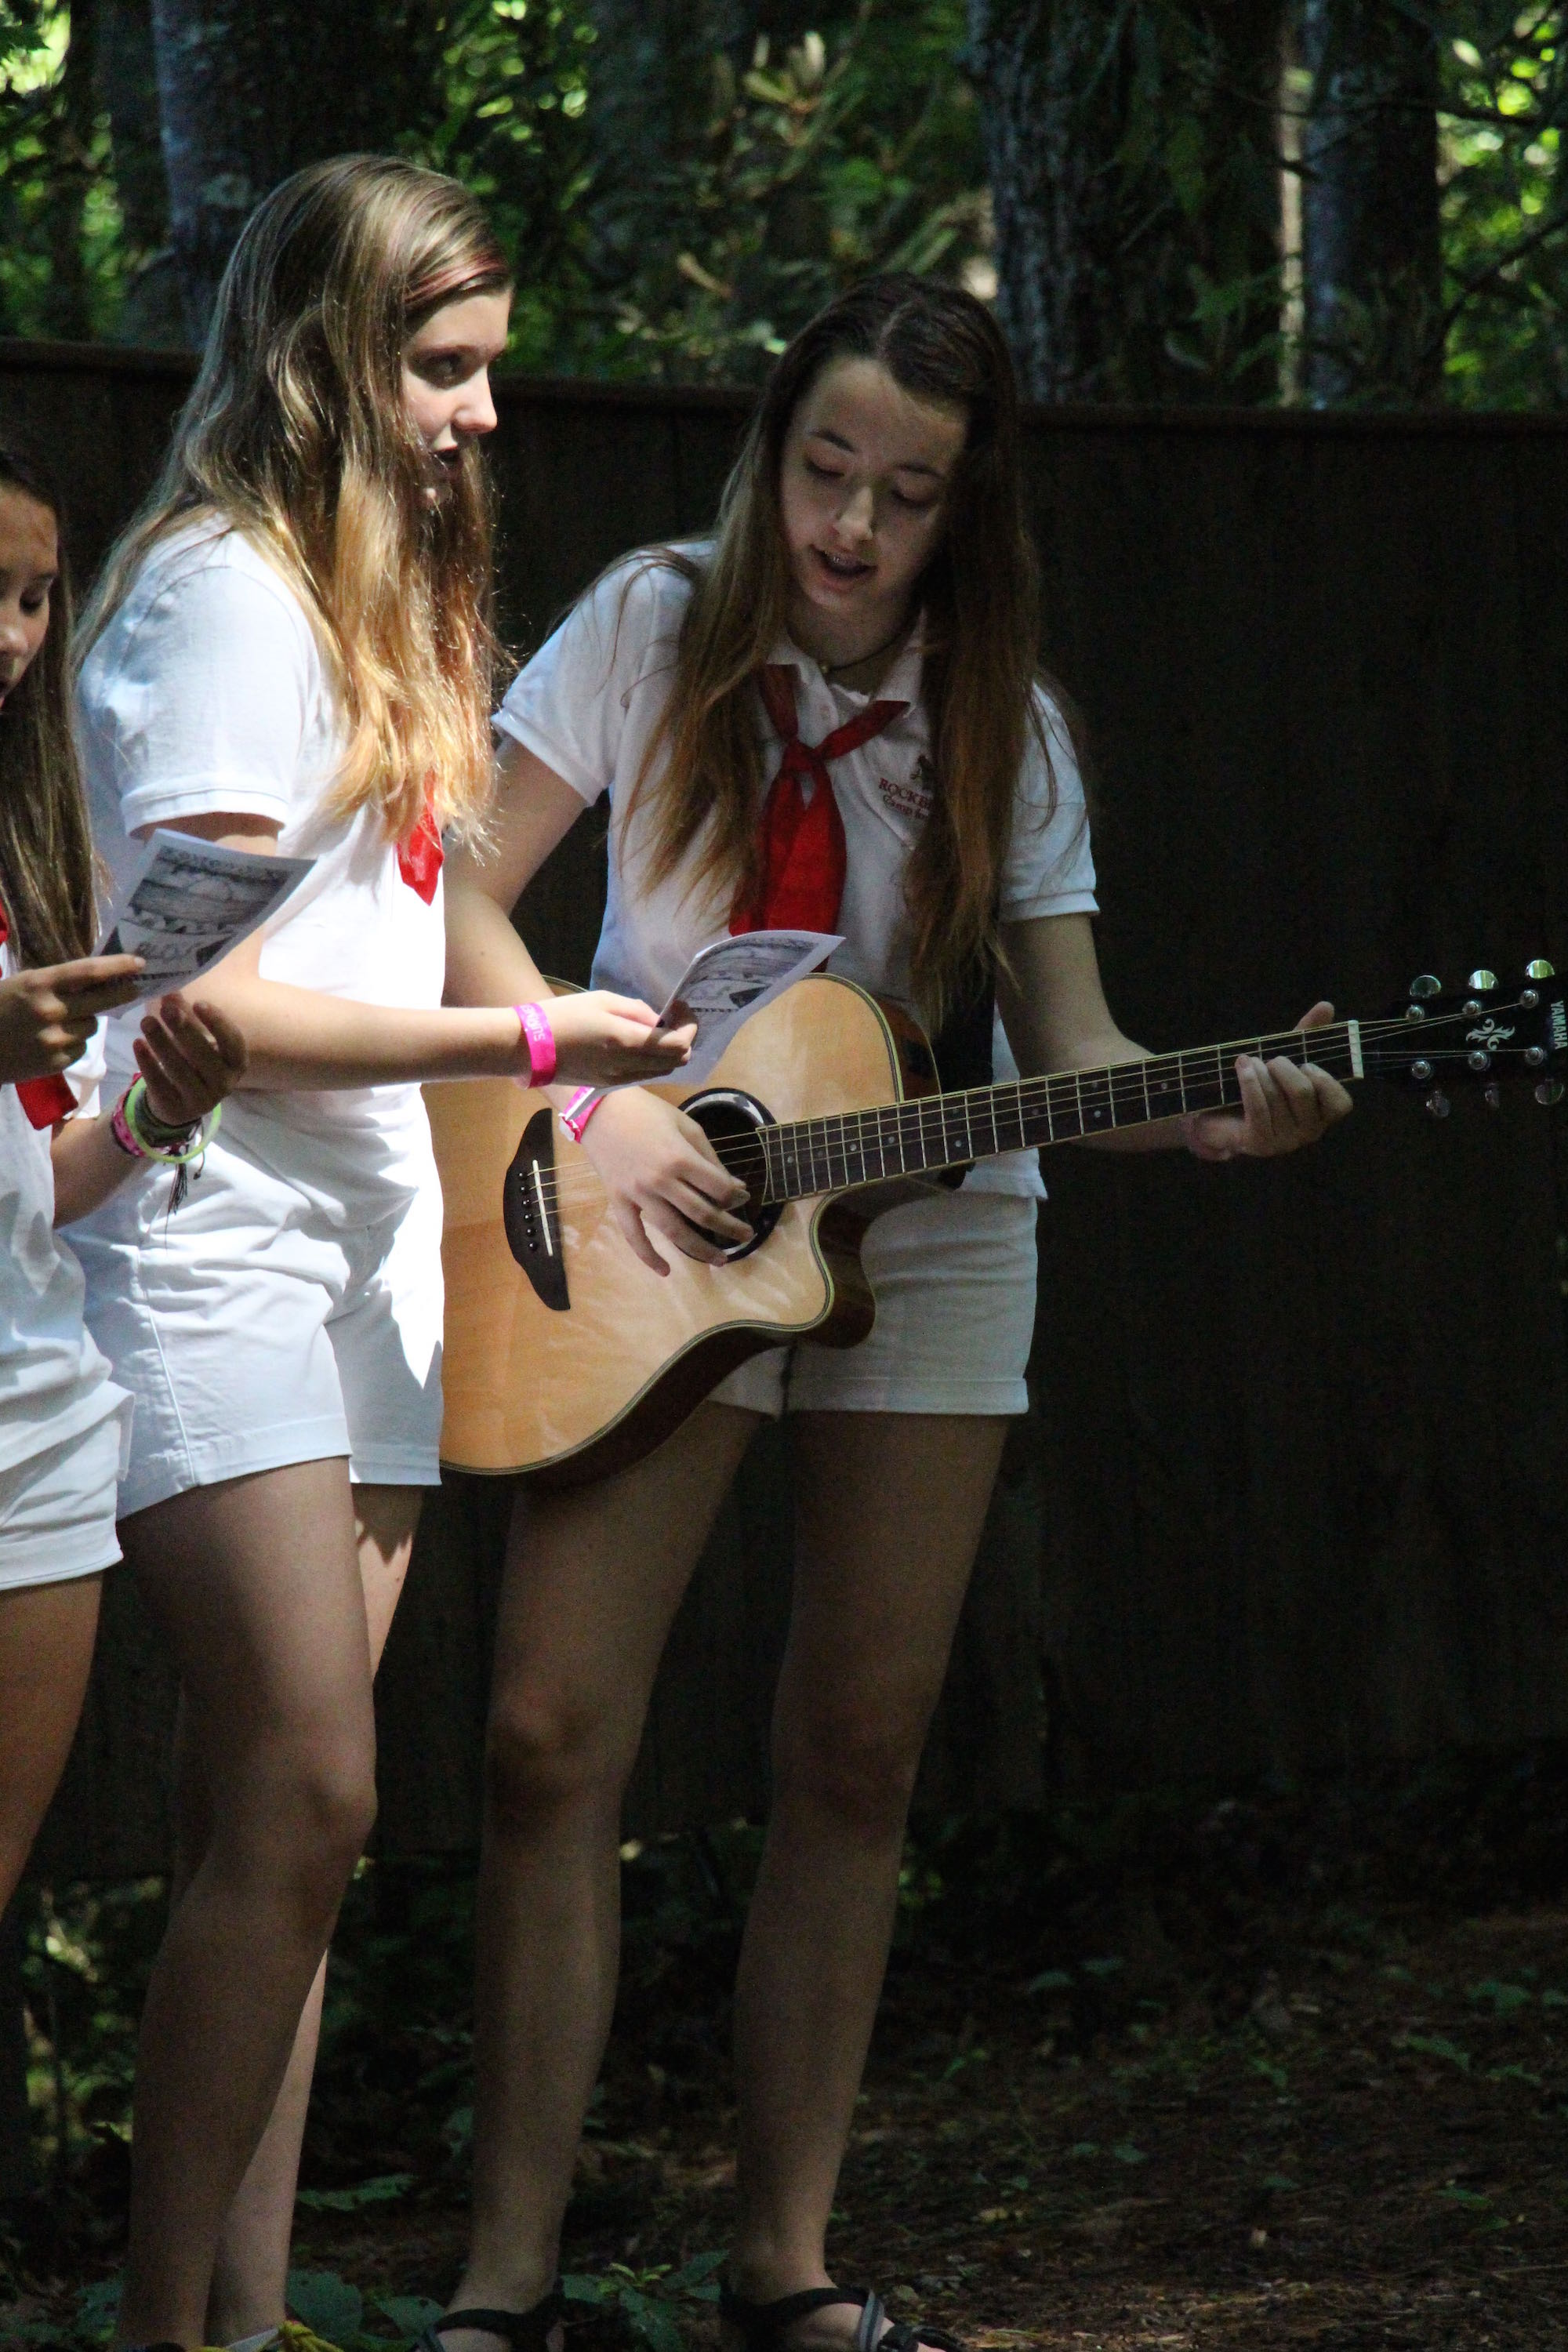 camp girls guitar singing